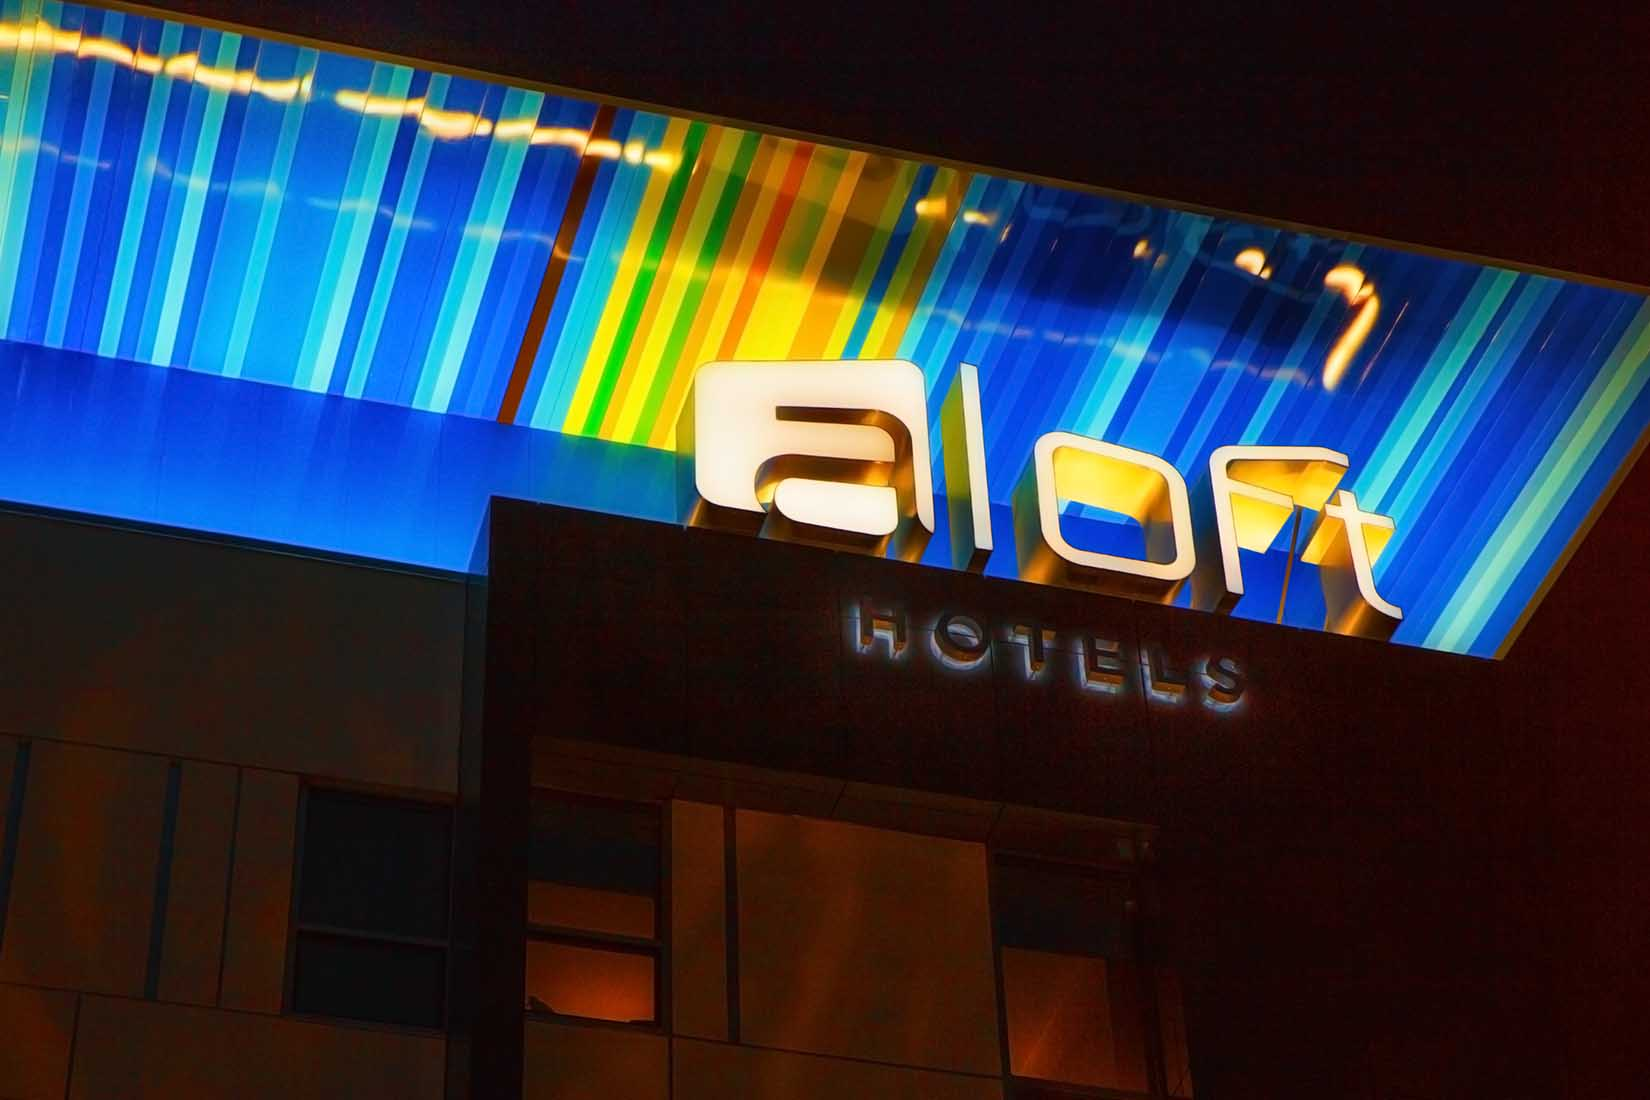 aloft hotel sign